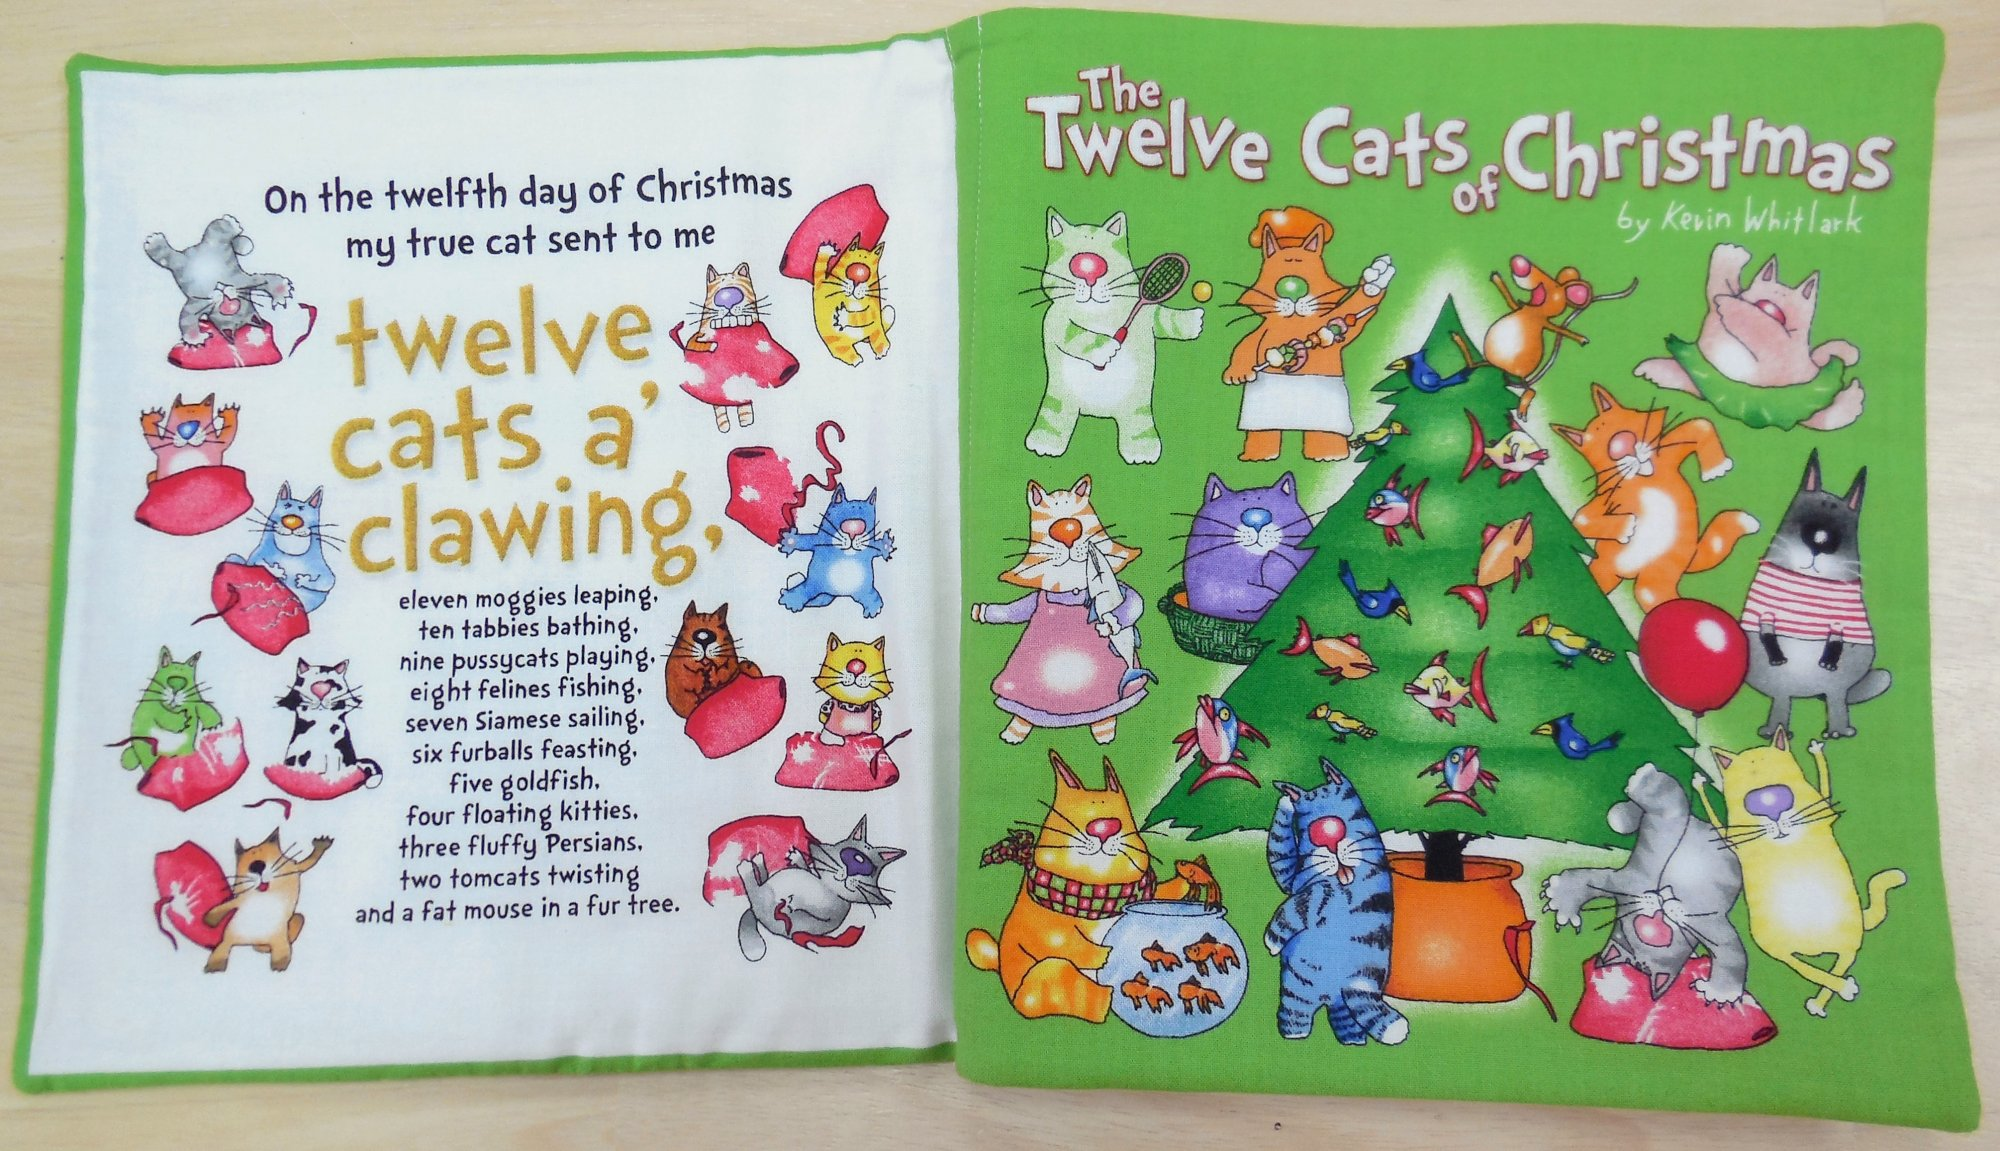 12 Cats of Christmas - Book Panel